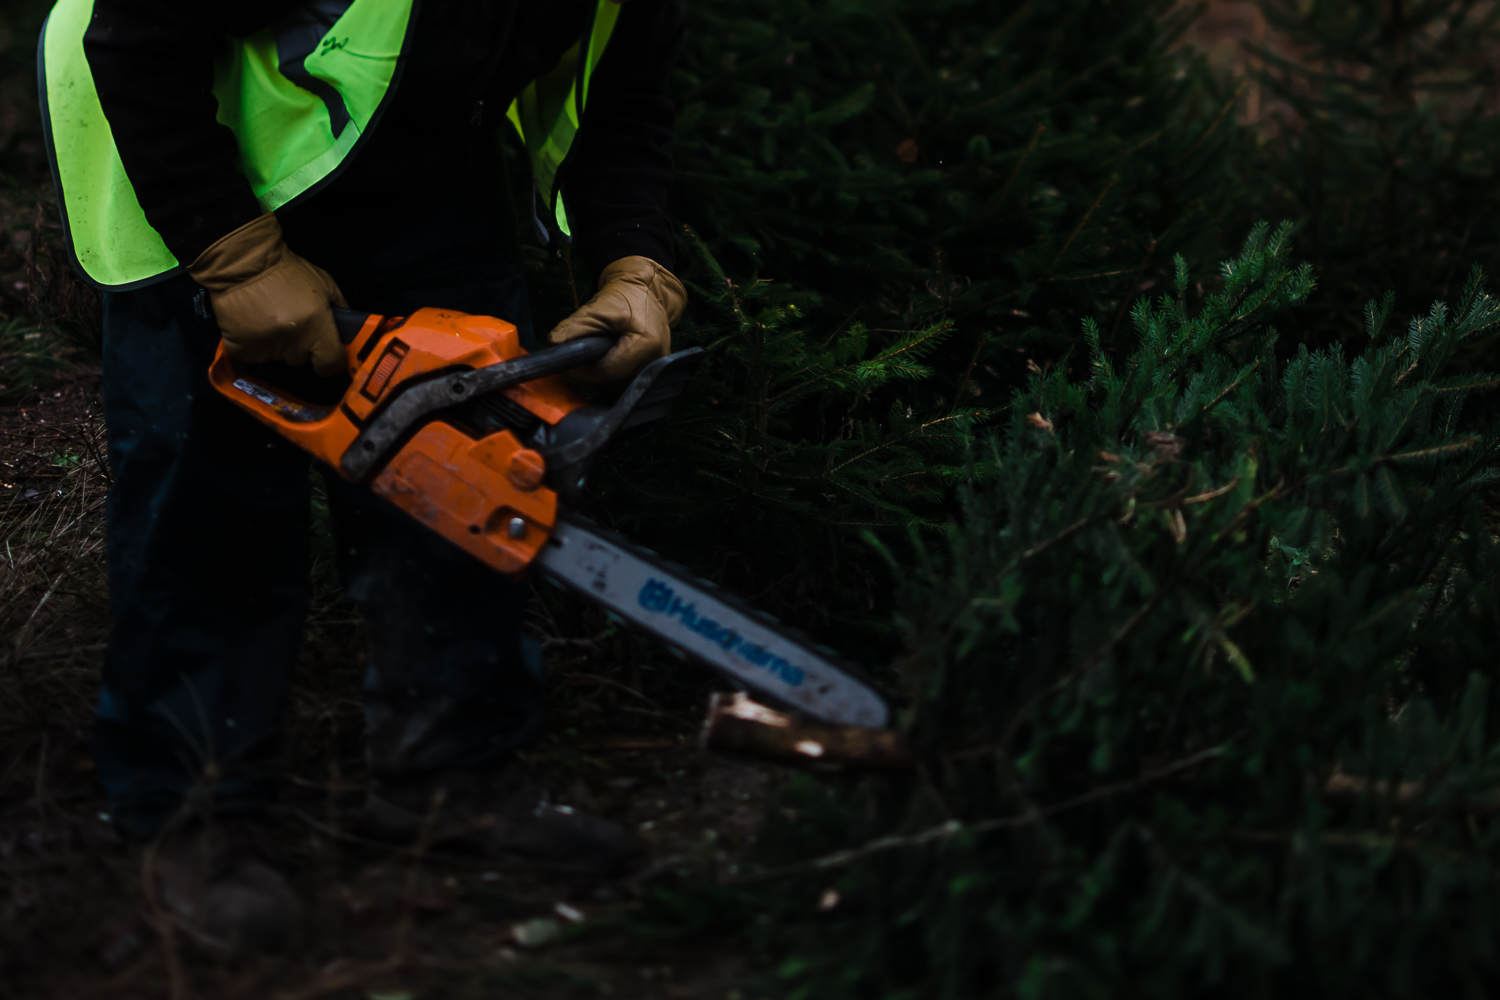 Chopping down the Christmas tree health and safety